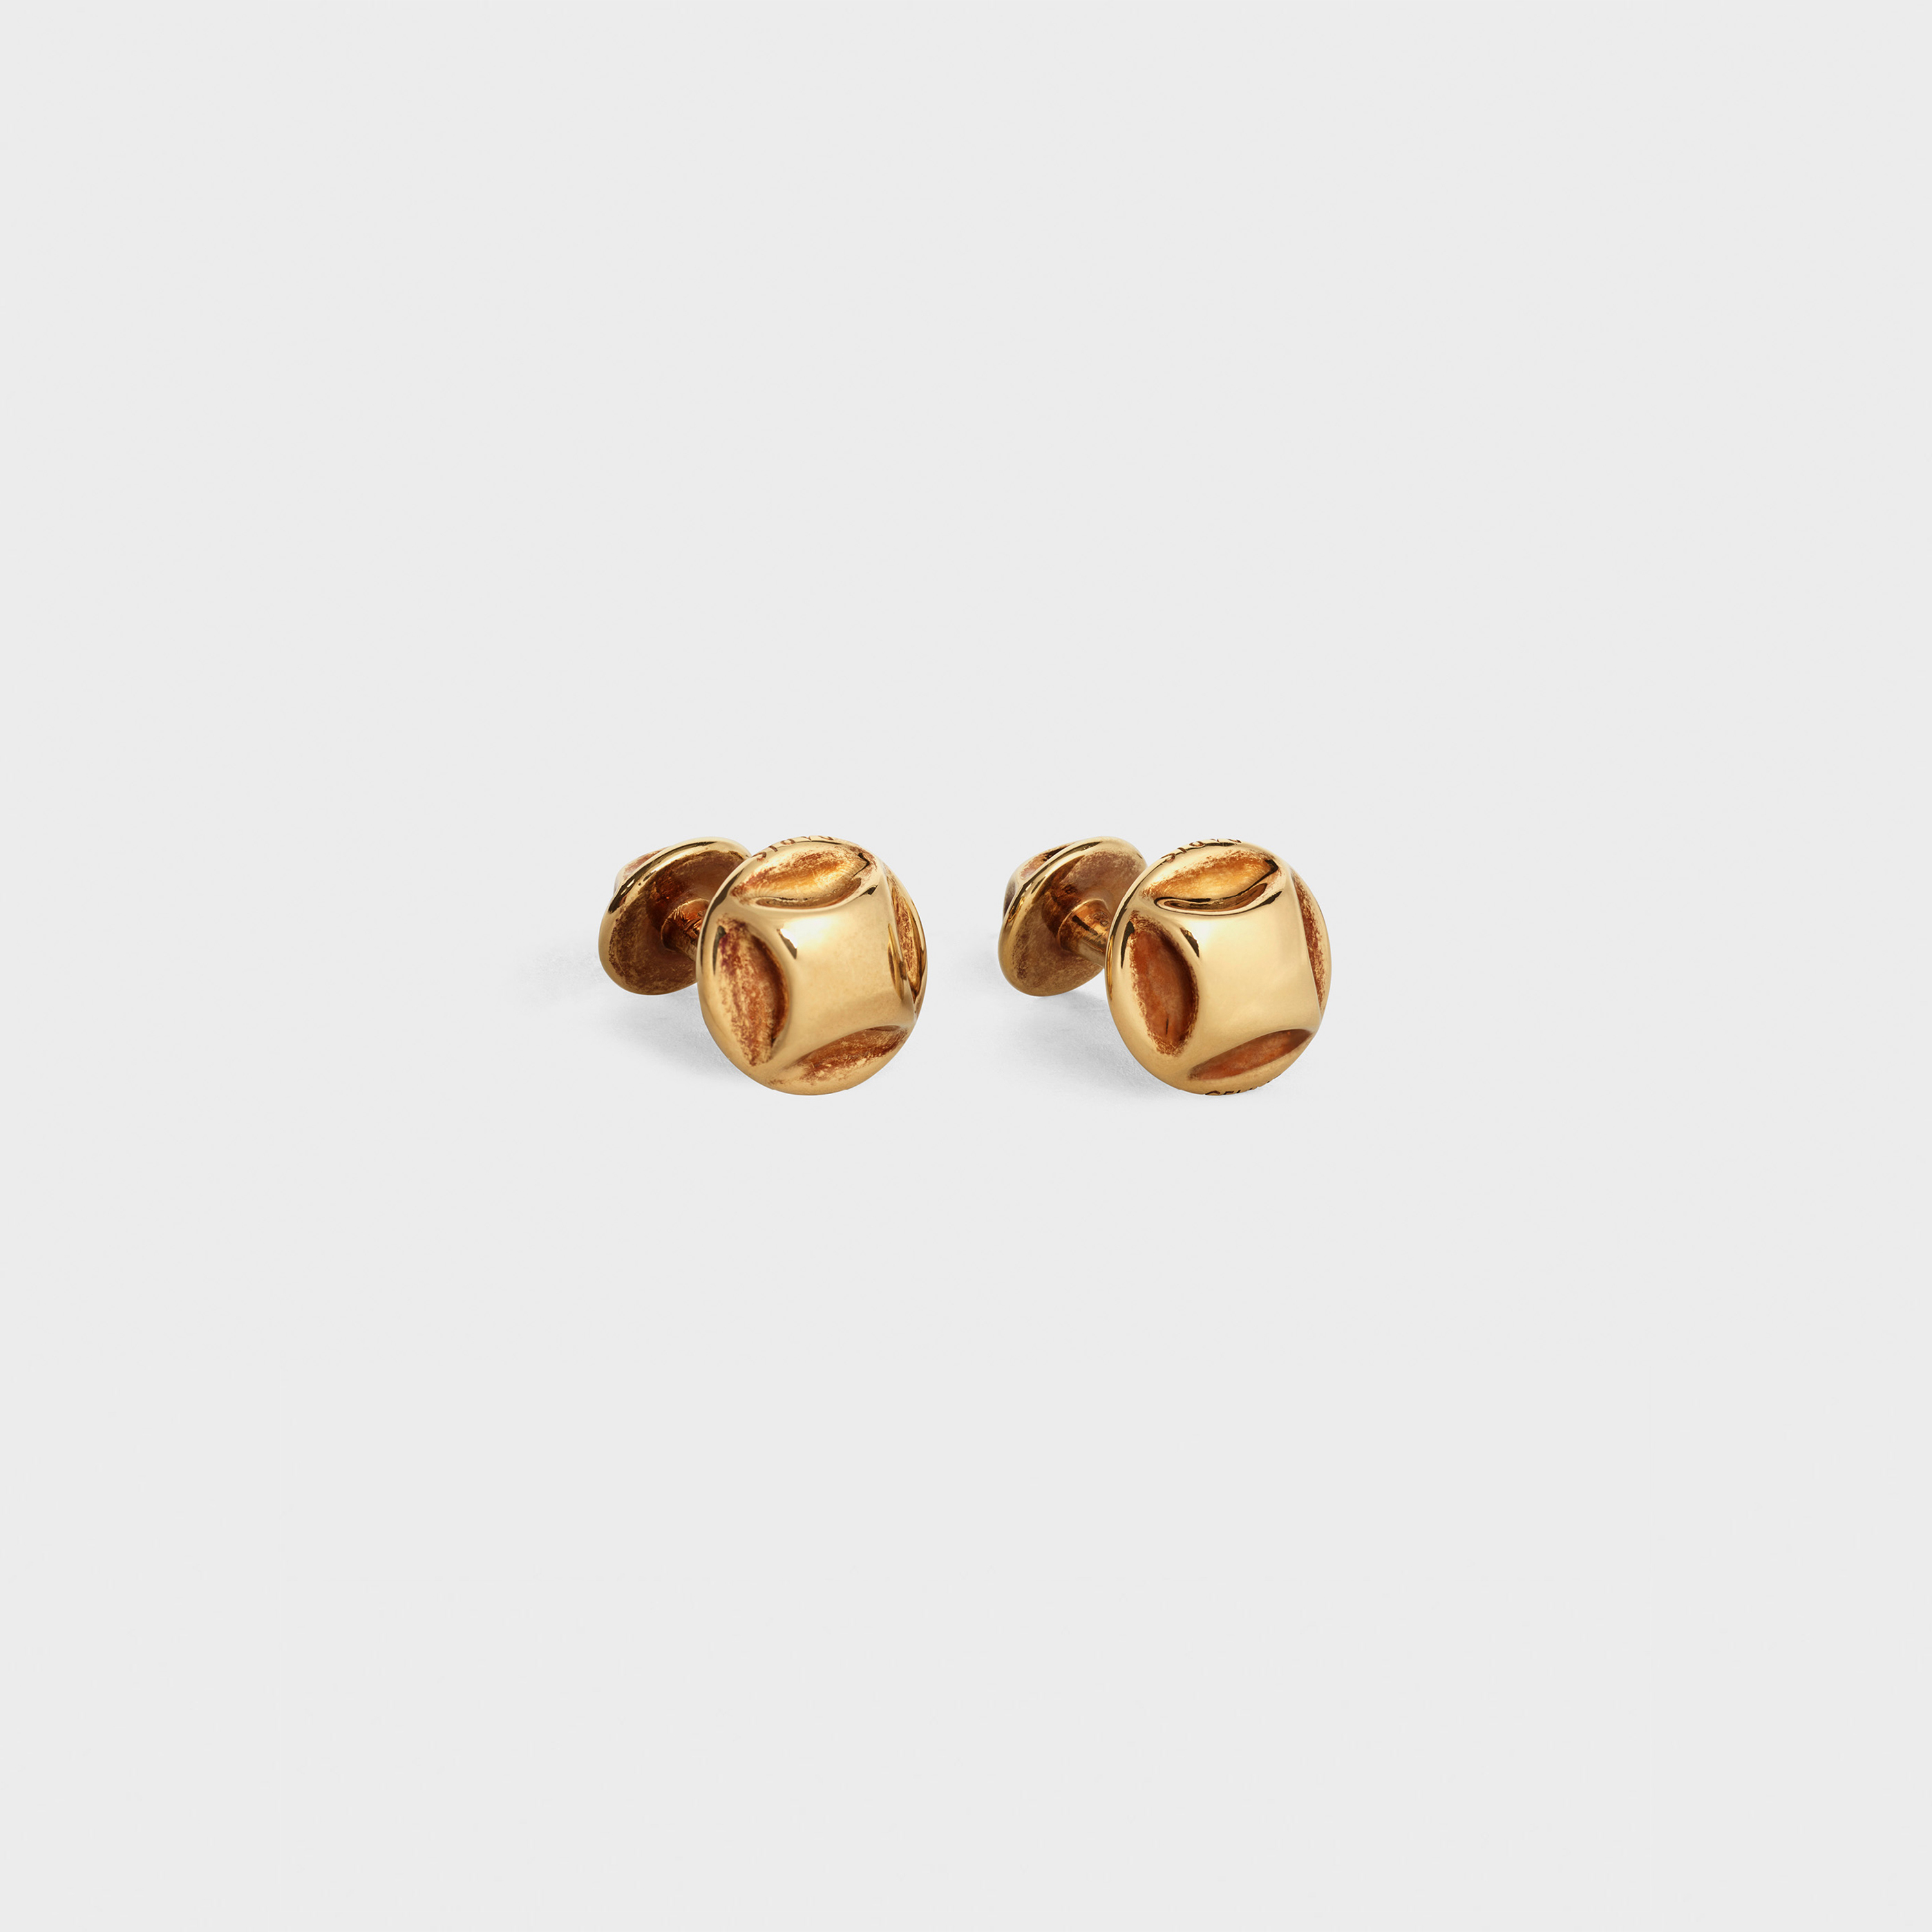 Clous Celine Cufflinks in Brass with Vintage Gold finish | CELINE